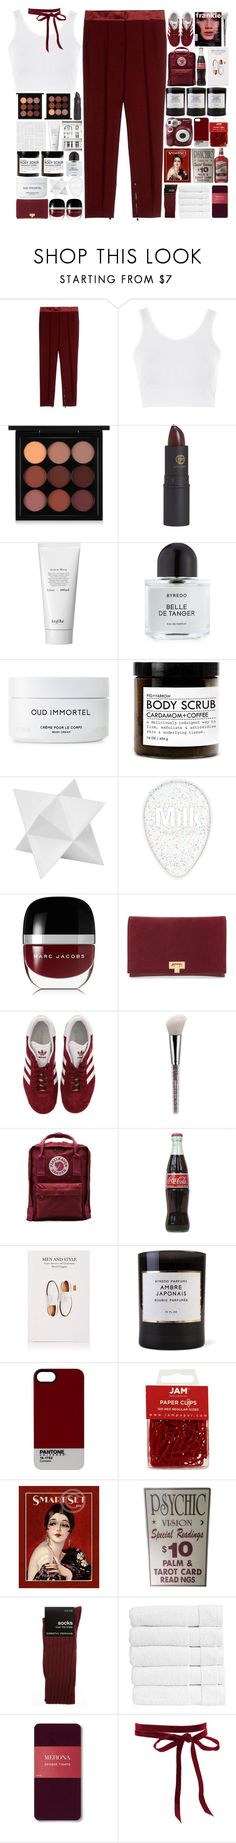 """6205"" by tiffanyelinor ❤ liked on Polyvore featuring Burberry, Topshop, MAC Cosmetics, Lipstick Queen, JorgObé, Prada, Byredo, Dot & Bo, Marc Jacobs and Tory Burch"